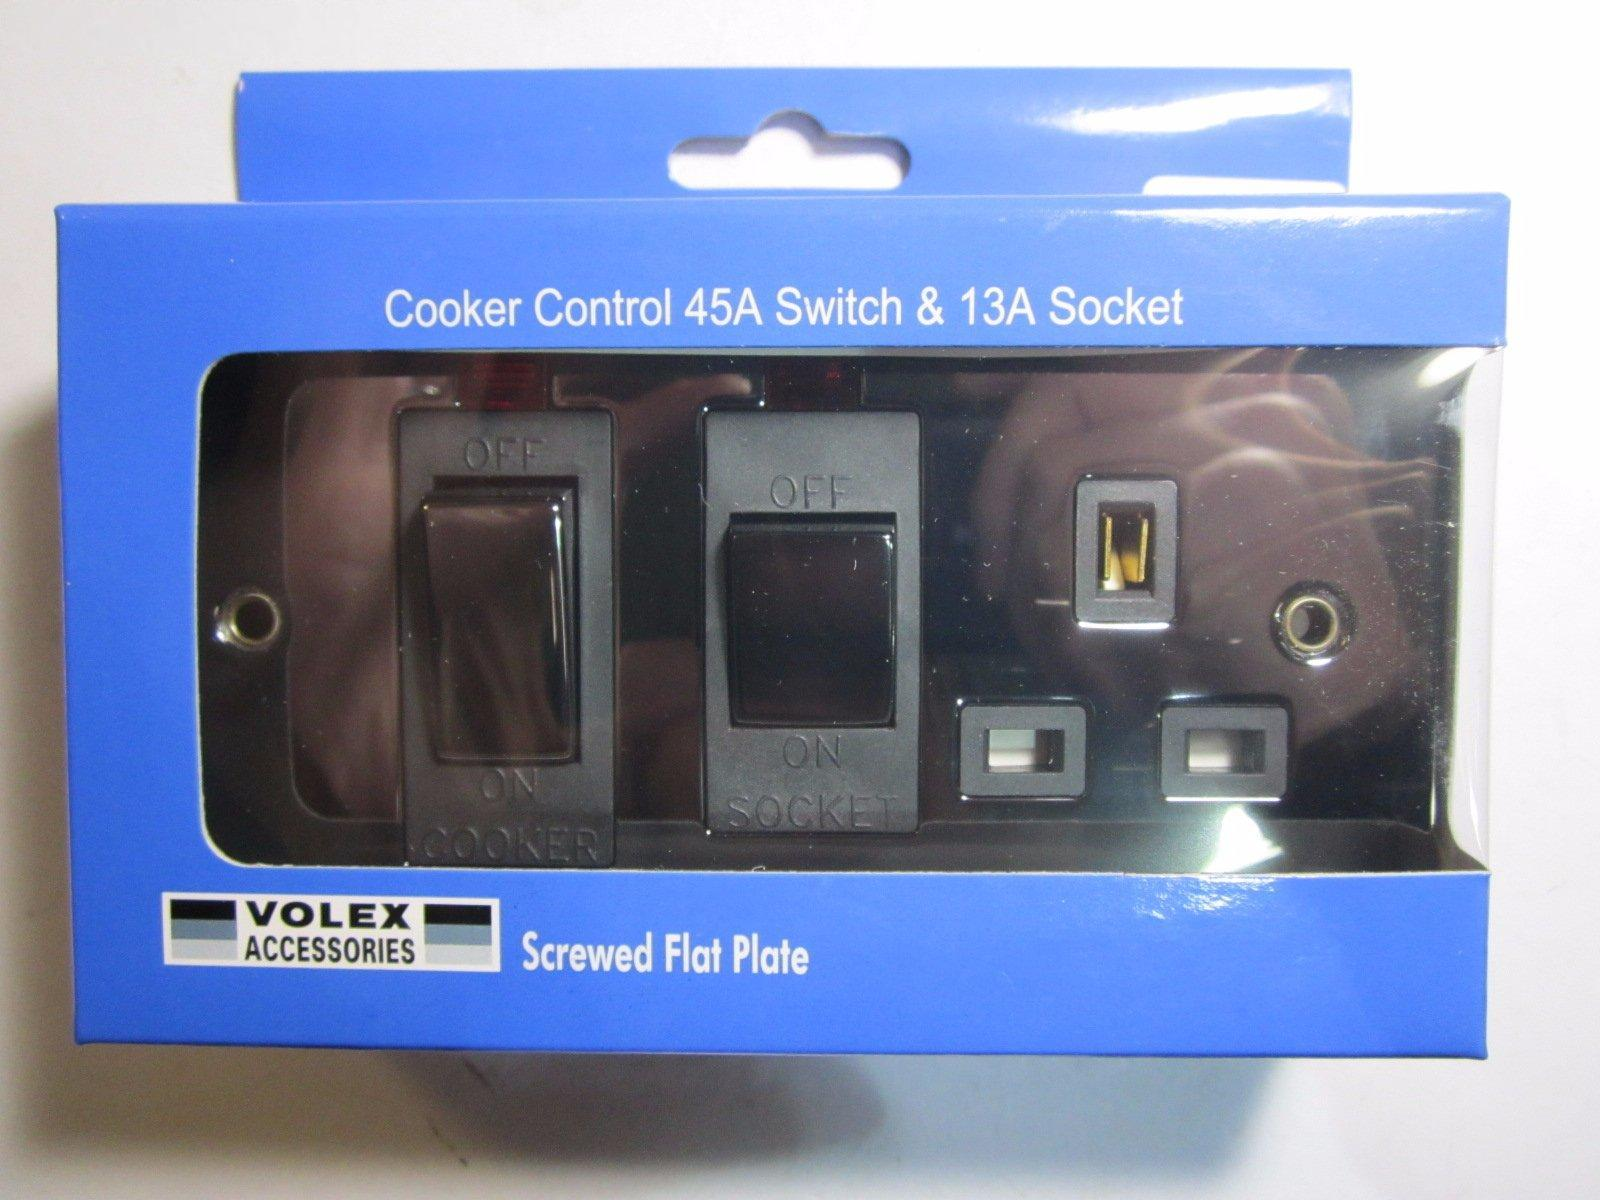 Volex Cooker Control 45a Switch 13a Socket With Neon Black Interior Wiring Regulations This Brand New Product Is Exactly As Shown In The Photos Below